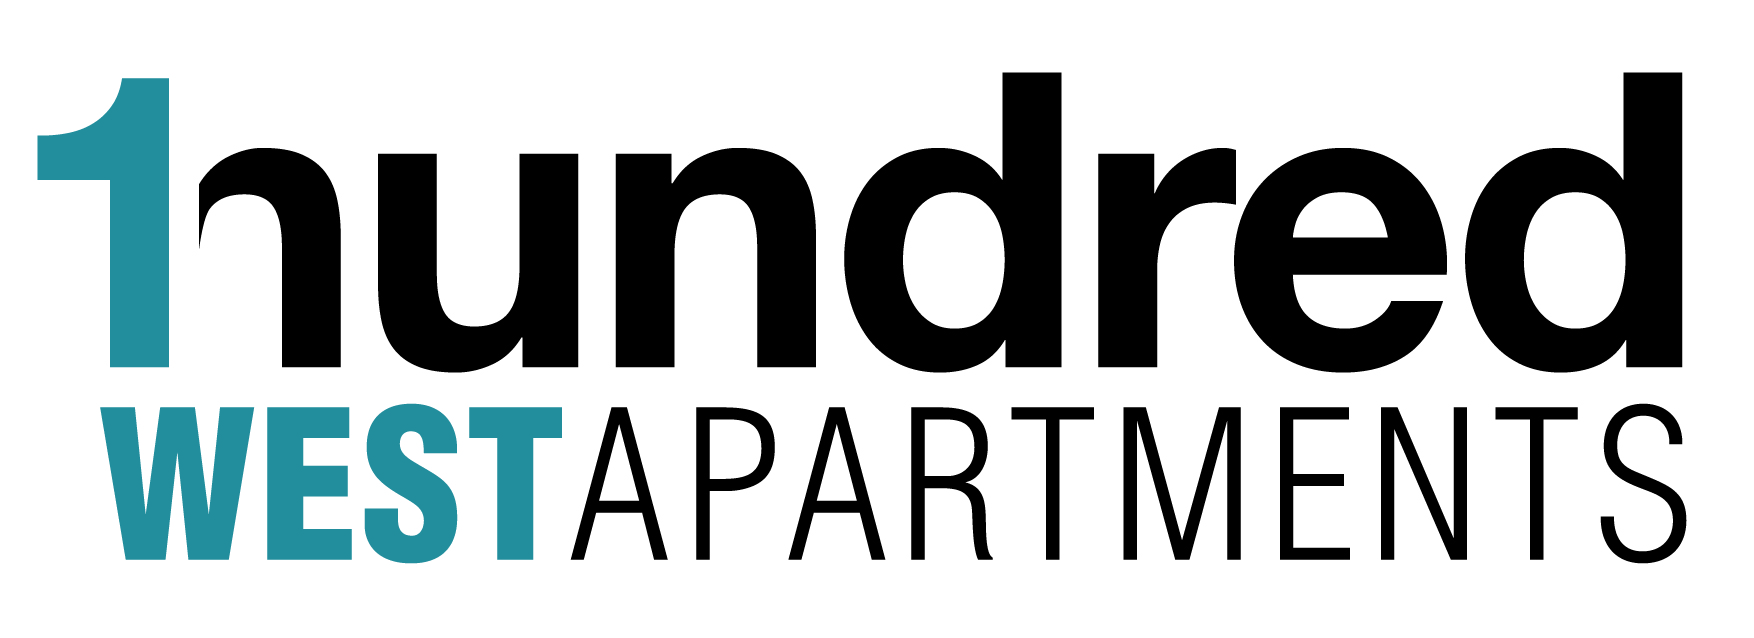 Apartments in Washington - Brand new apartments on Highway 100 in Washington.  Leasing now!